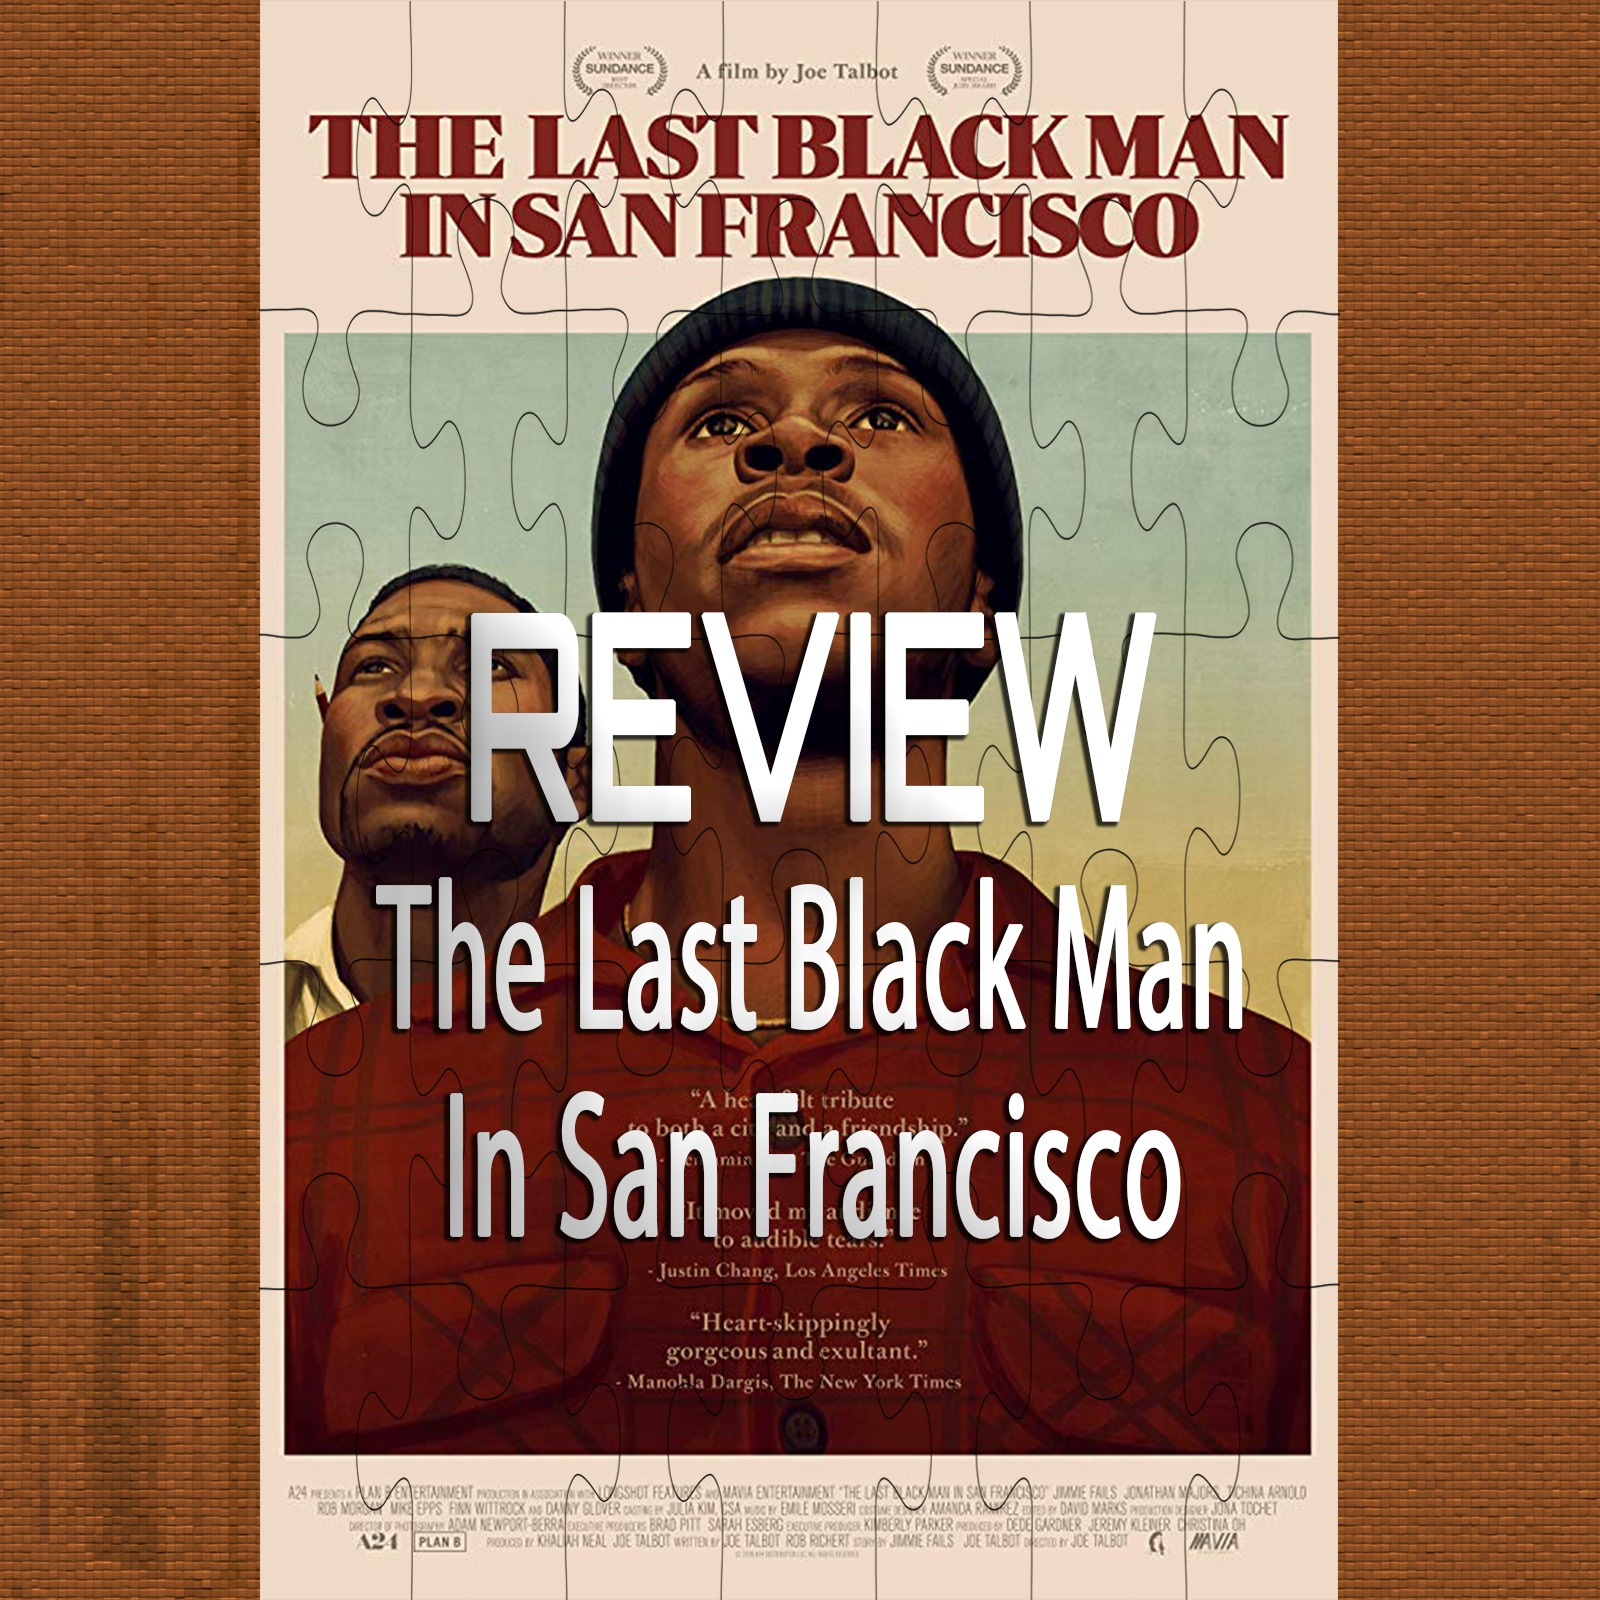 The Last Black Man In San Francisco (Review)